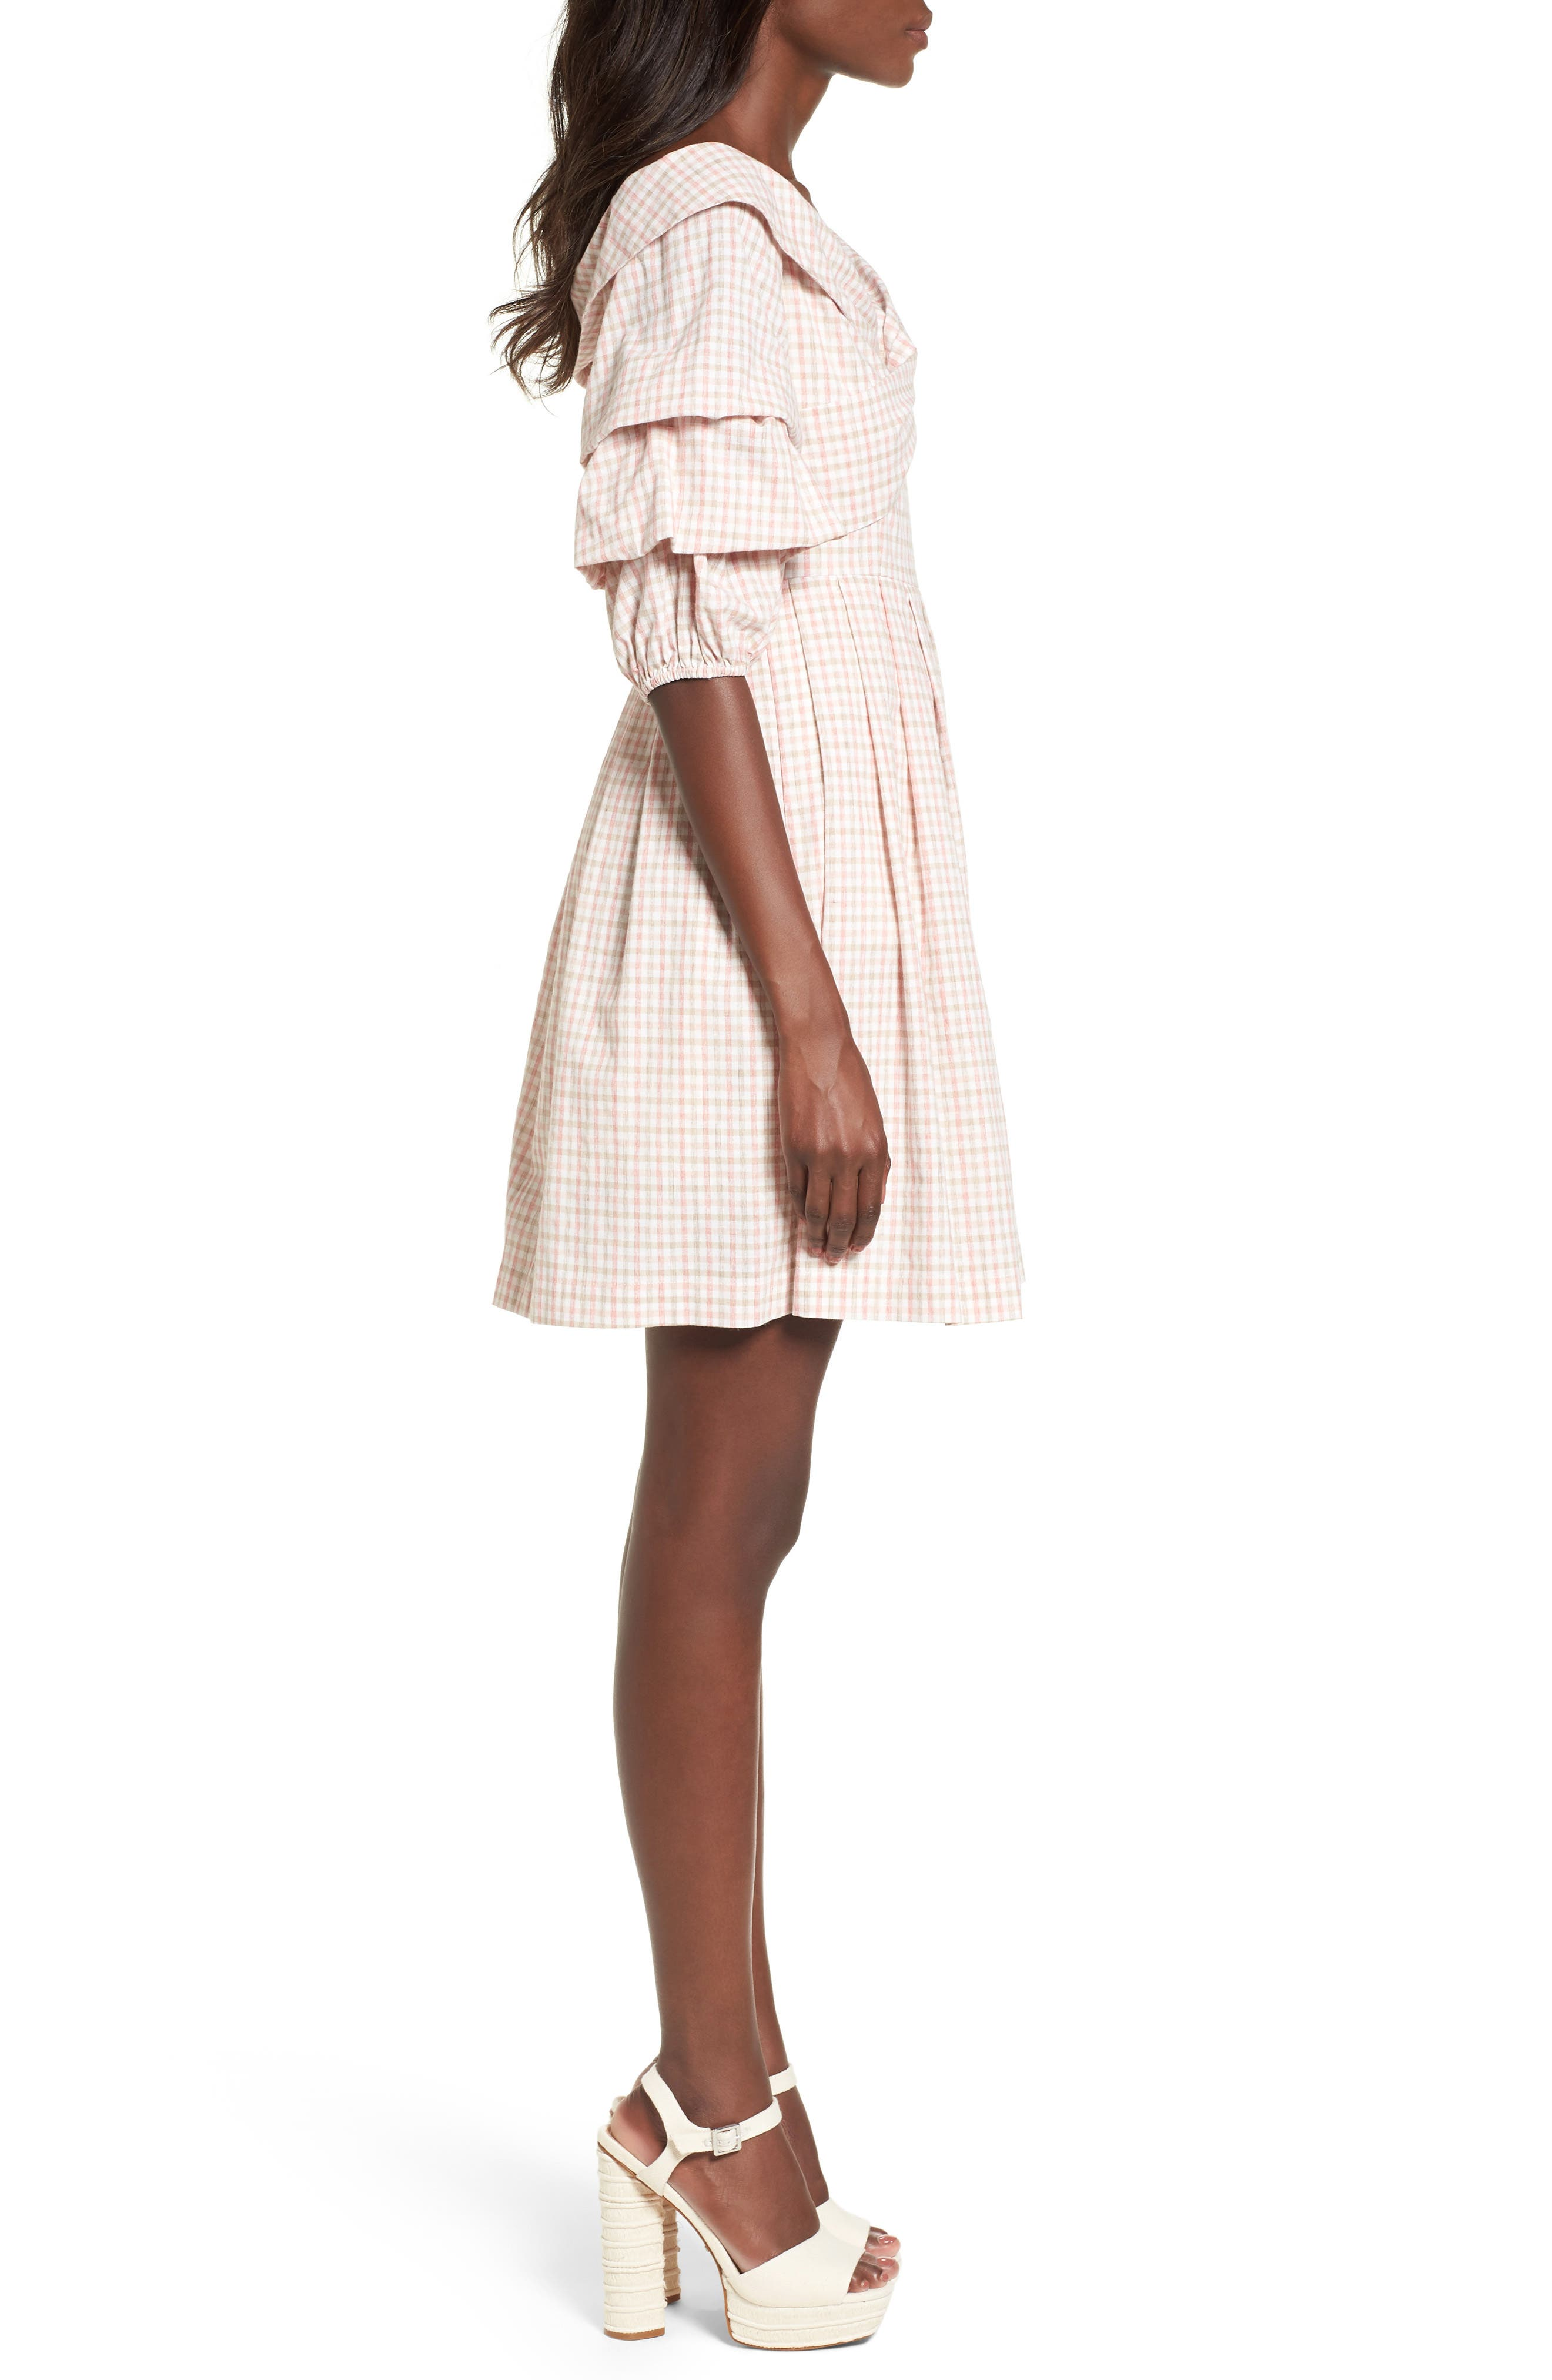 Chriselle x J.O.A. Tiered Sleeve Minidress,                             Alternate thumbnail 3, color,                             650